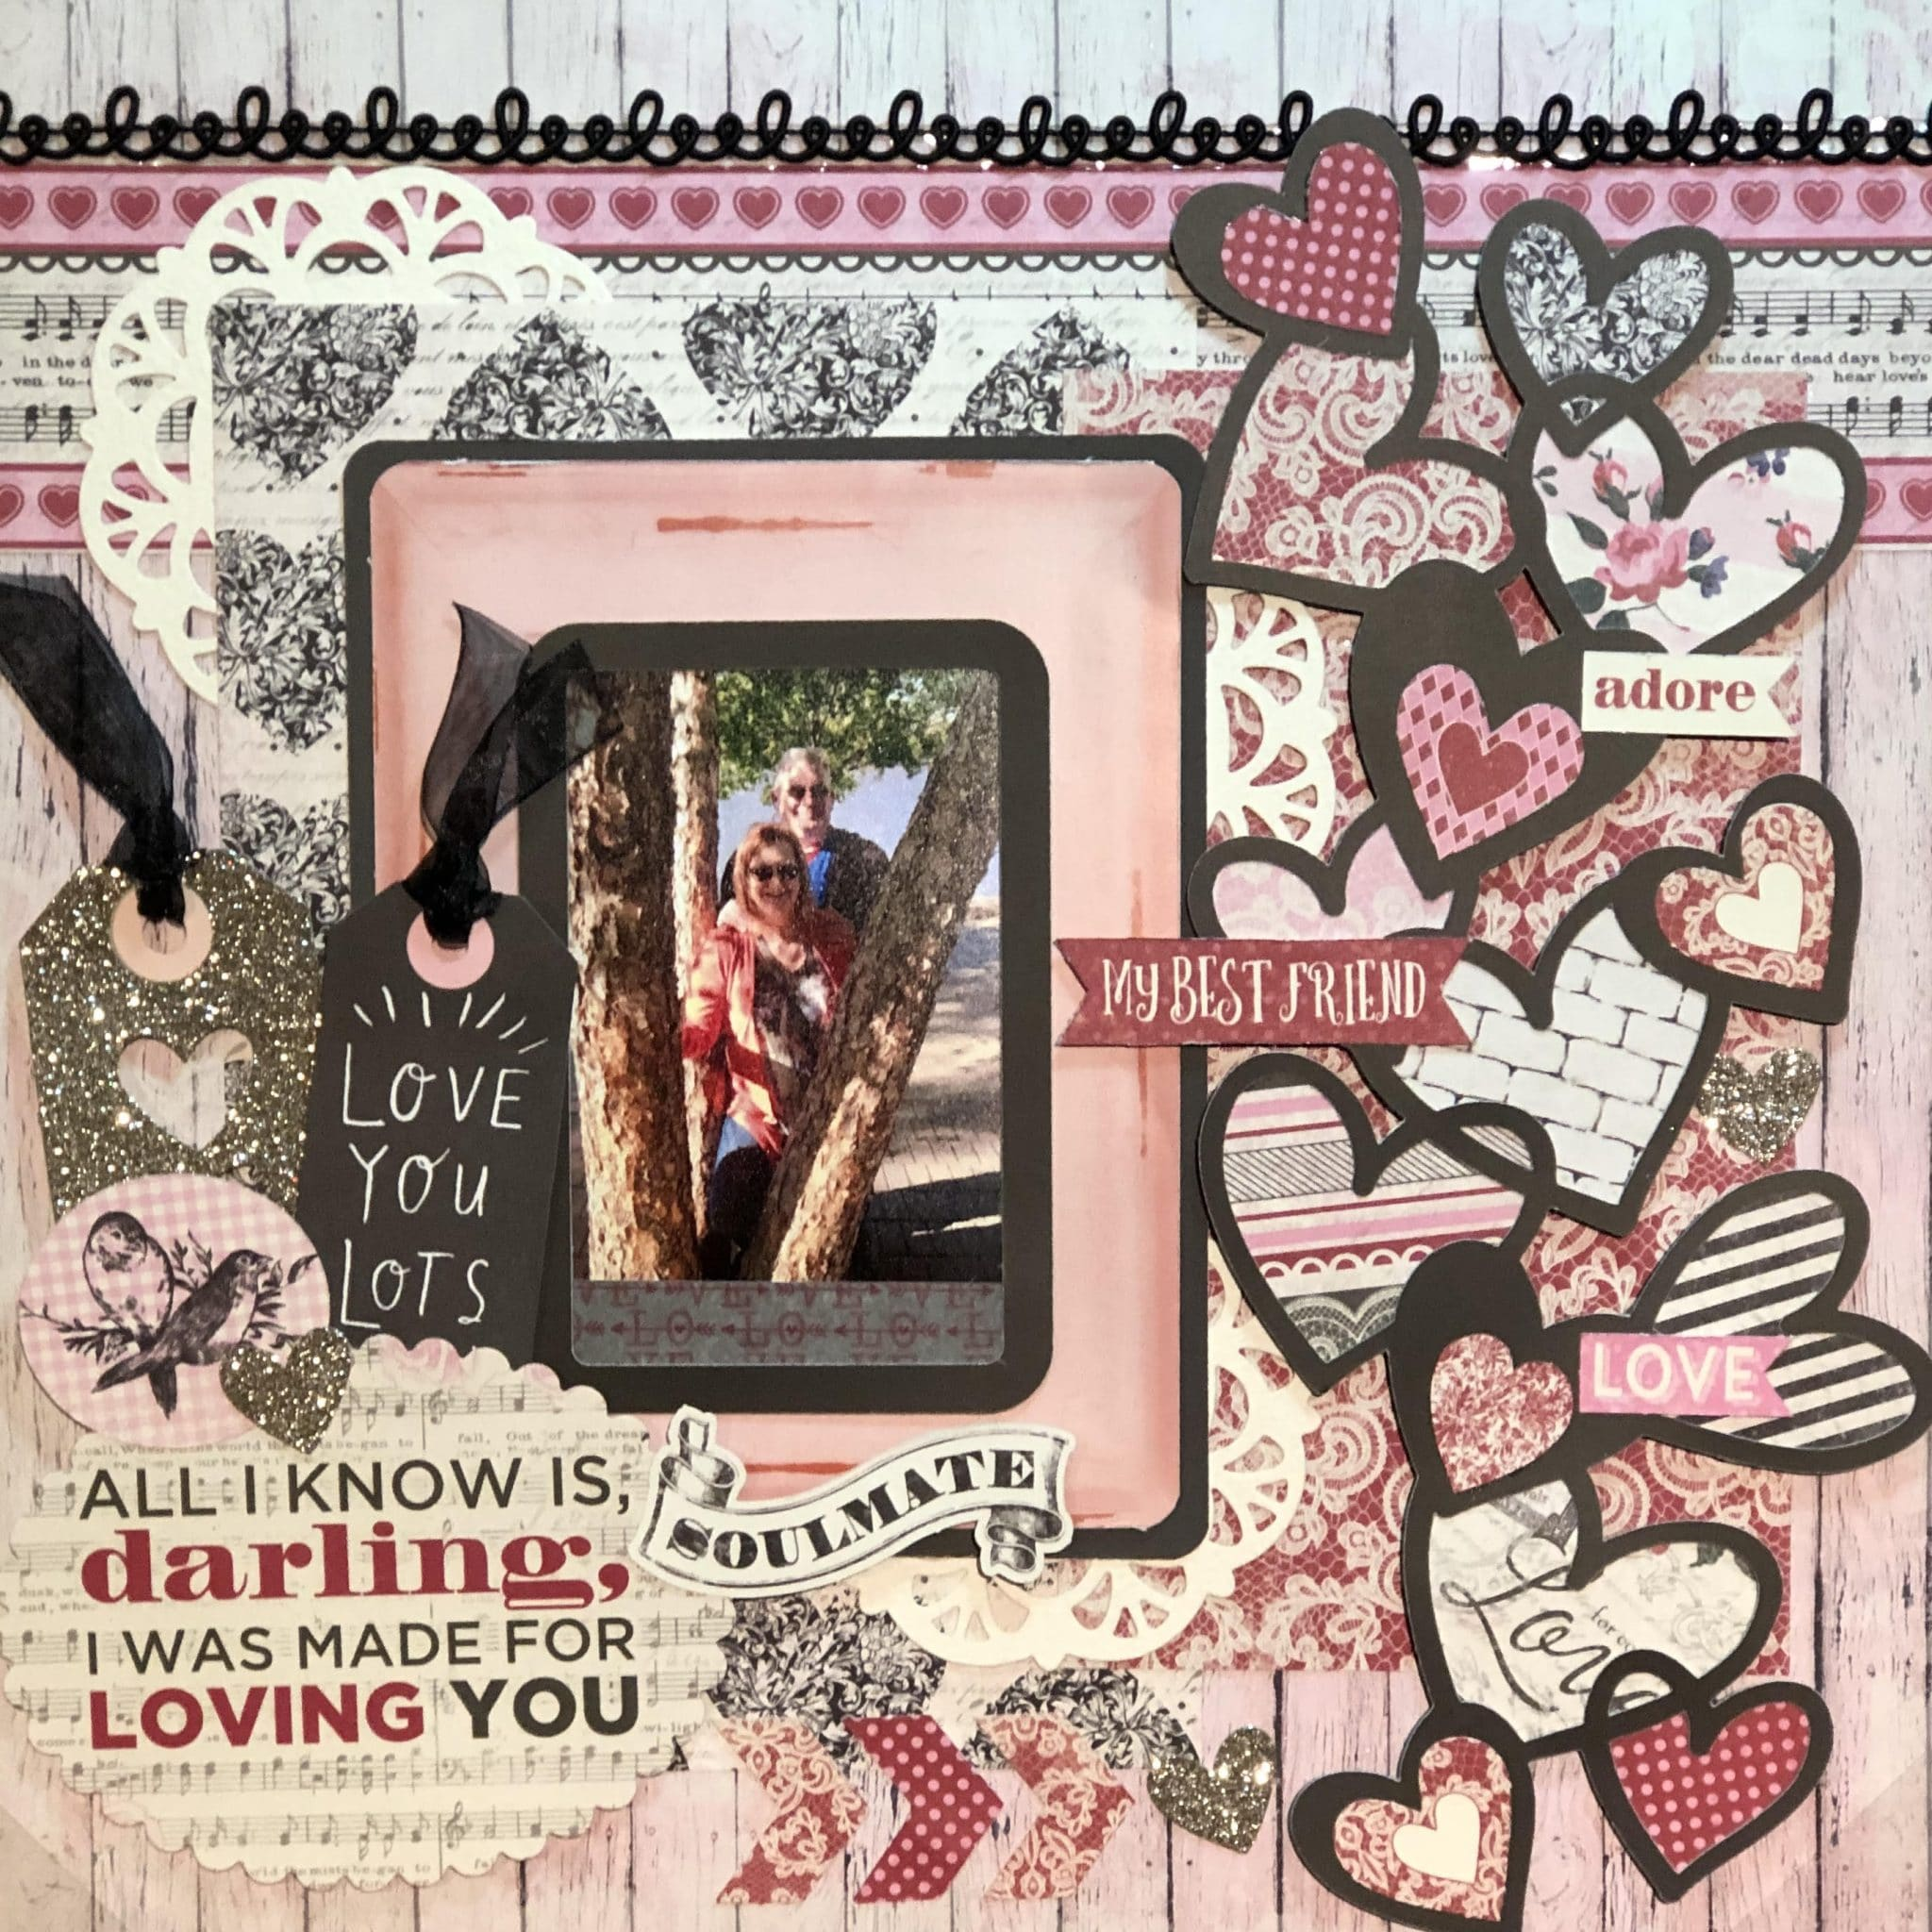 'Darling' Valentine's Layout Idea